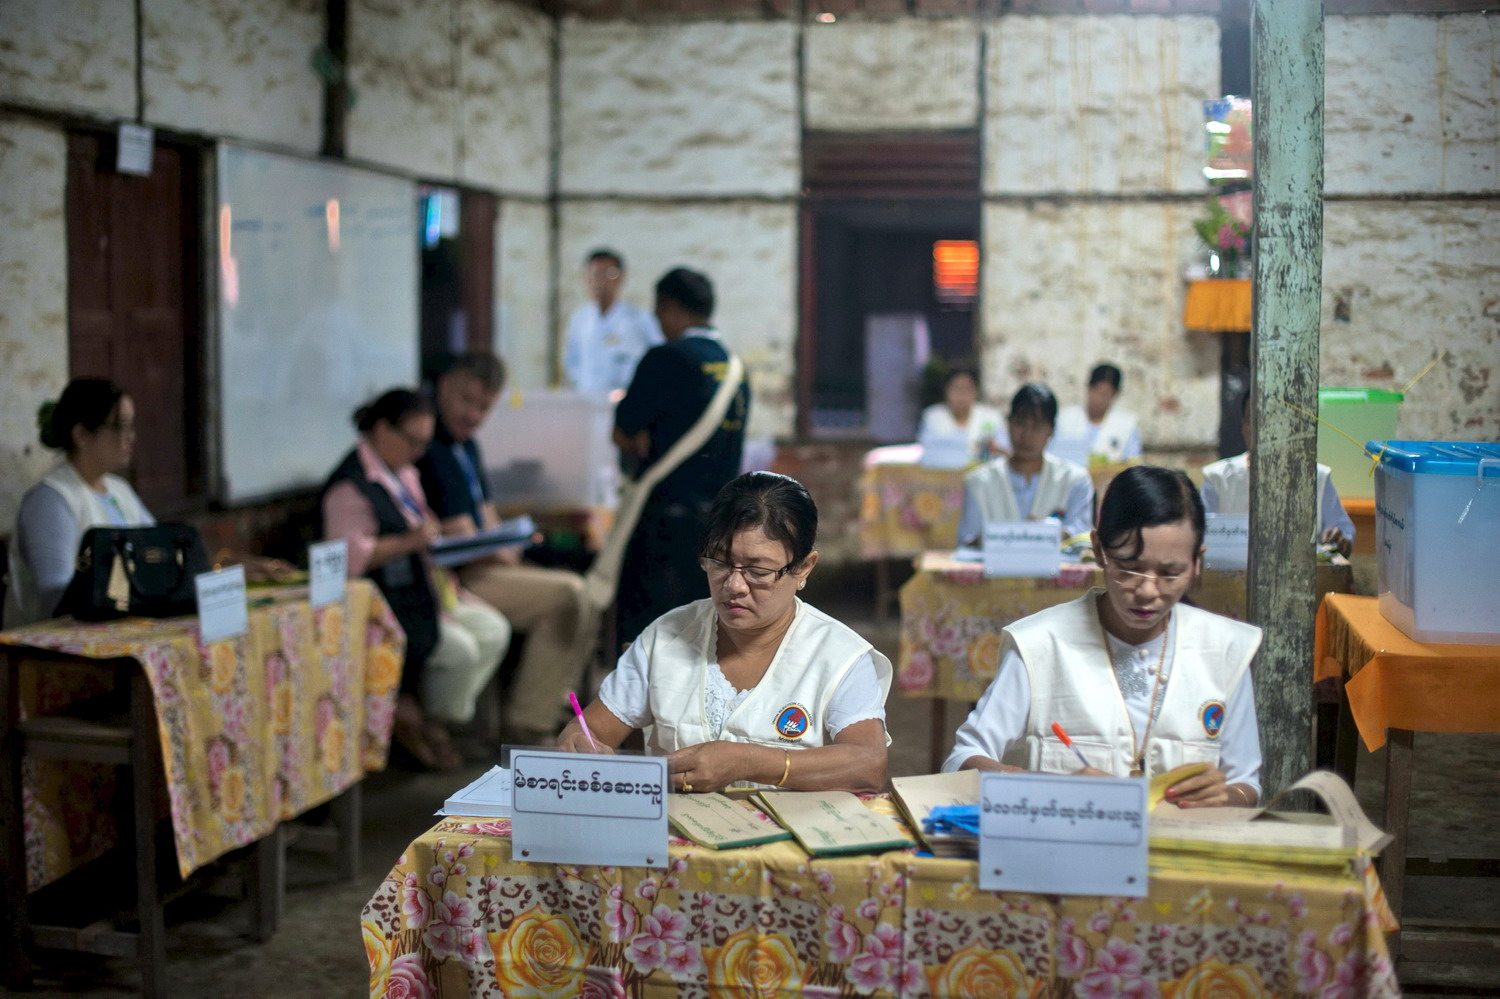 Voting underway in Myanmar's first free election for 25 years